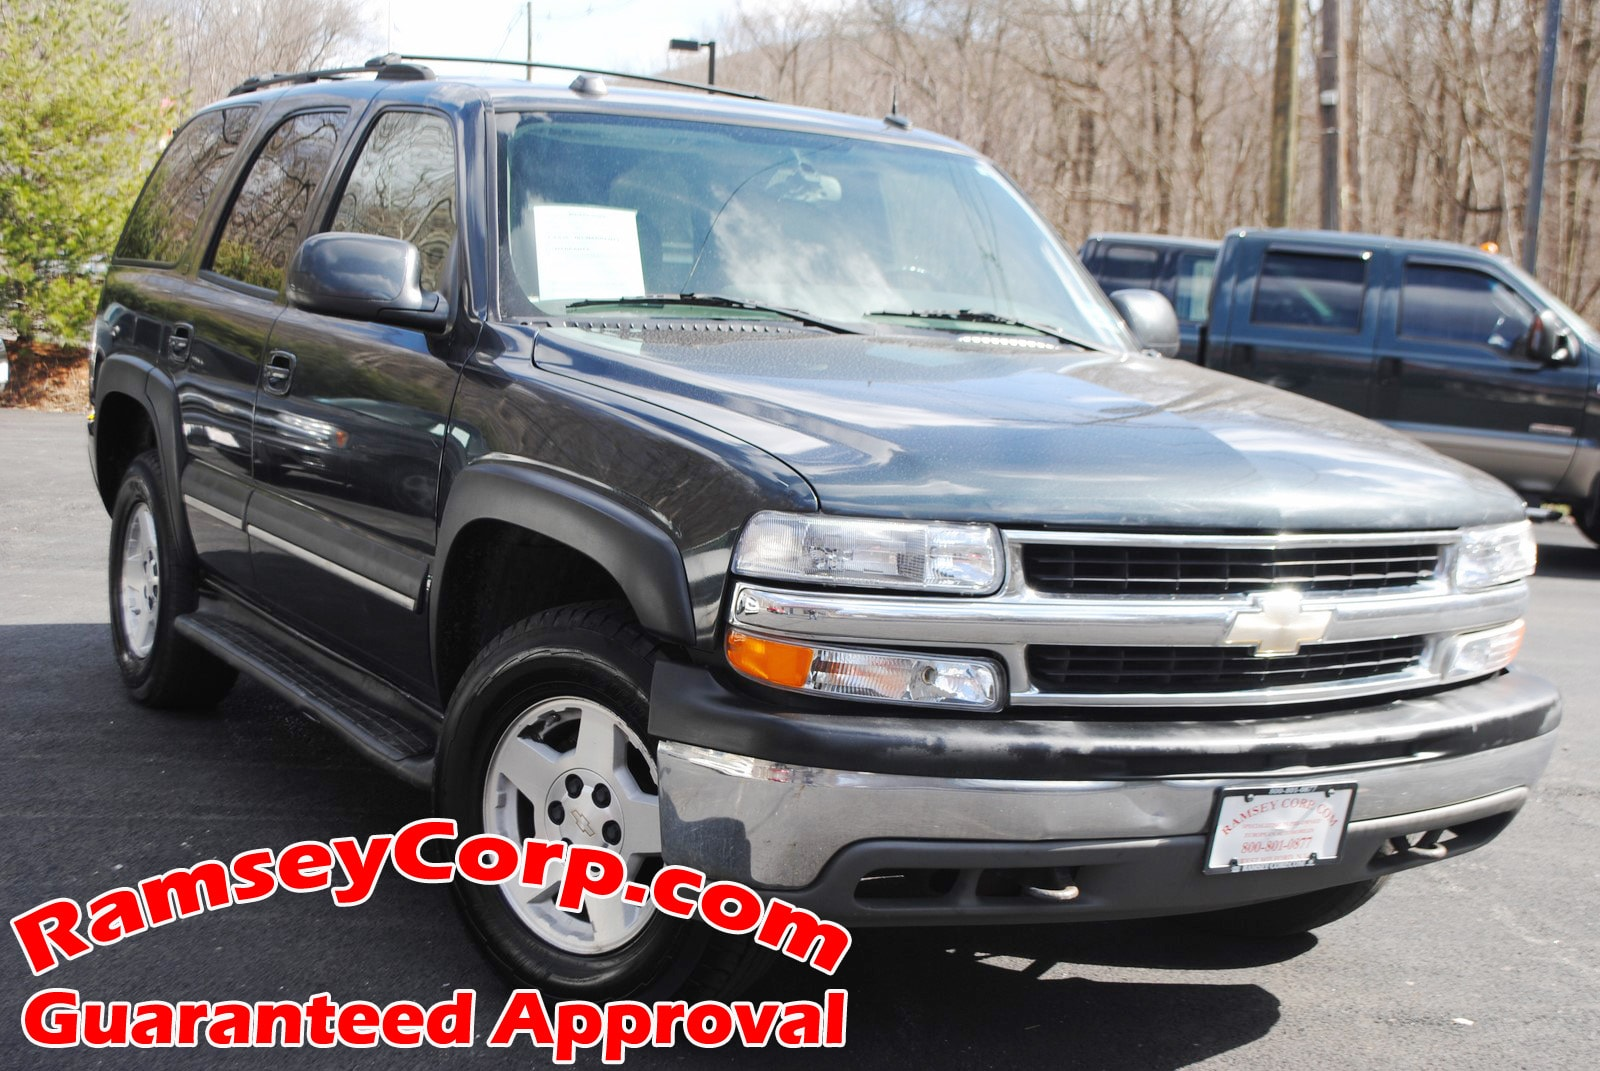 Tahoe 2004 chevy tahoe towing capacity : Used 2004 Chevrolet Tahoe For Sale | West Milford NJ